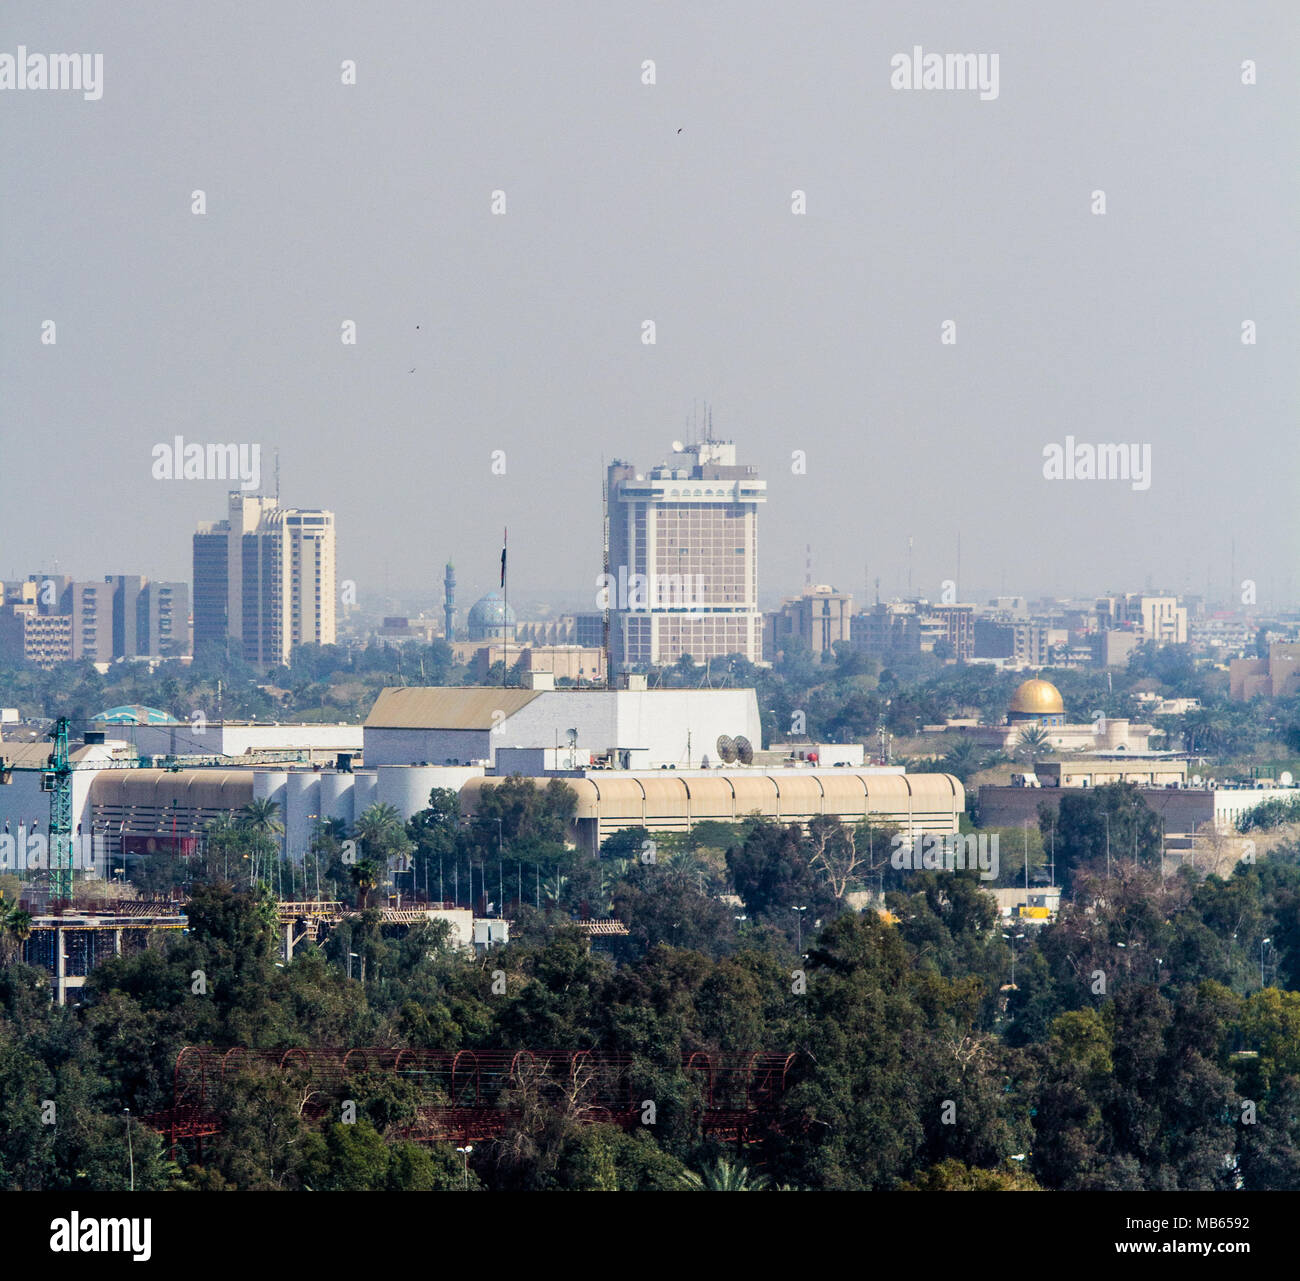 Aerial photo of the city of Baghdad, and shows where residential complexes. The city of Baghdad, capital of Iraq. - Stock Image